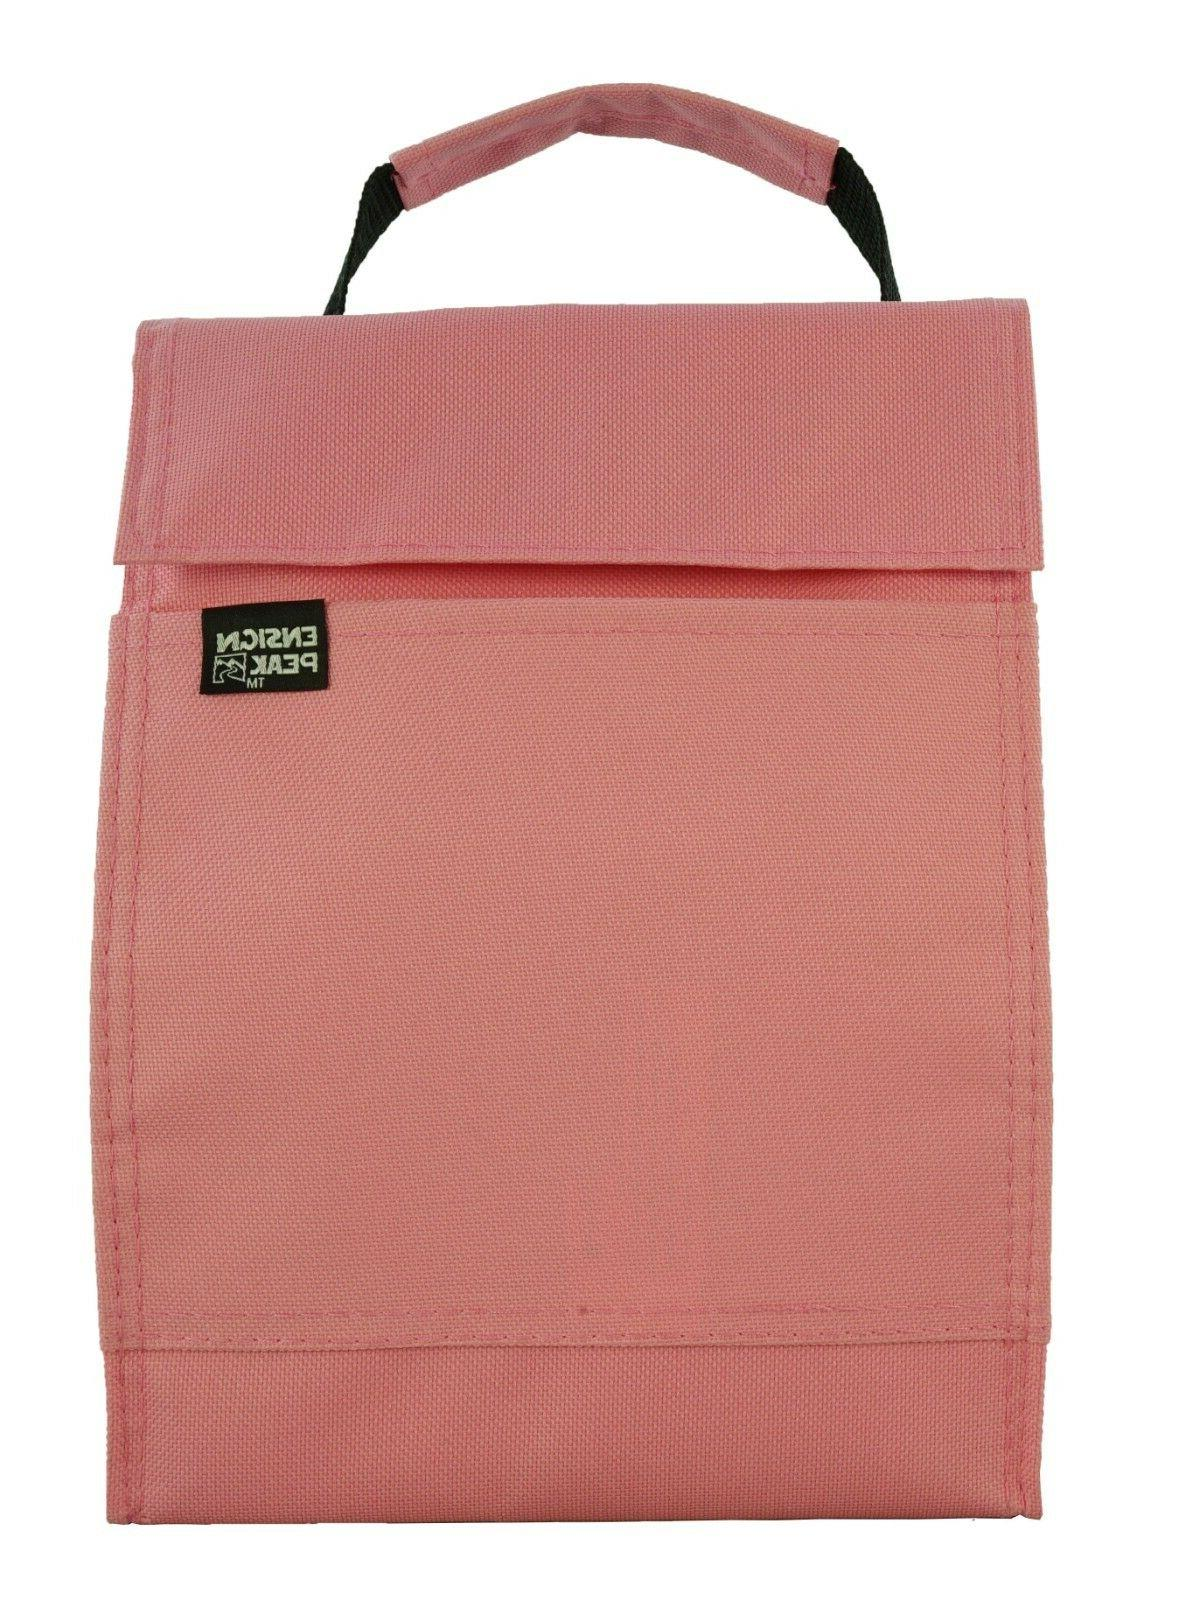 Ensign Lunch Sack / Bag, Tote Work